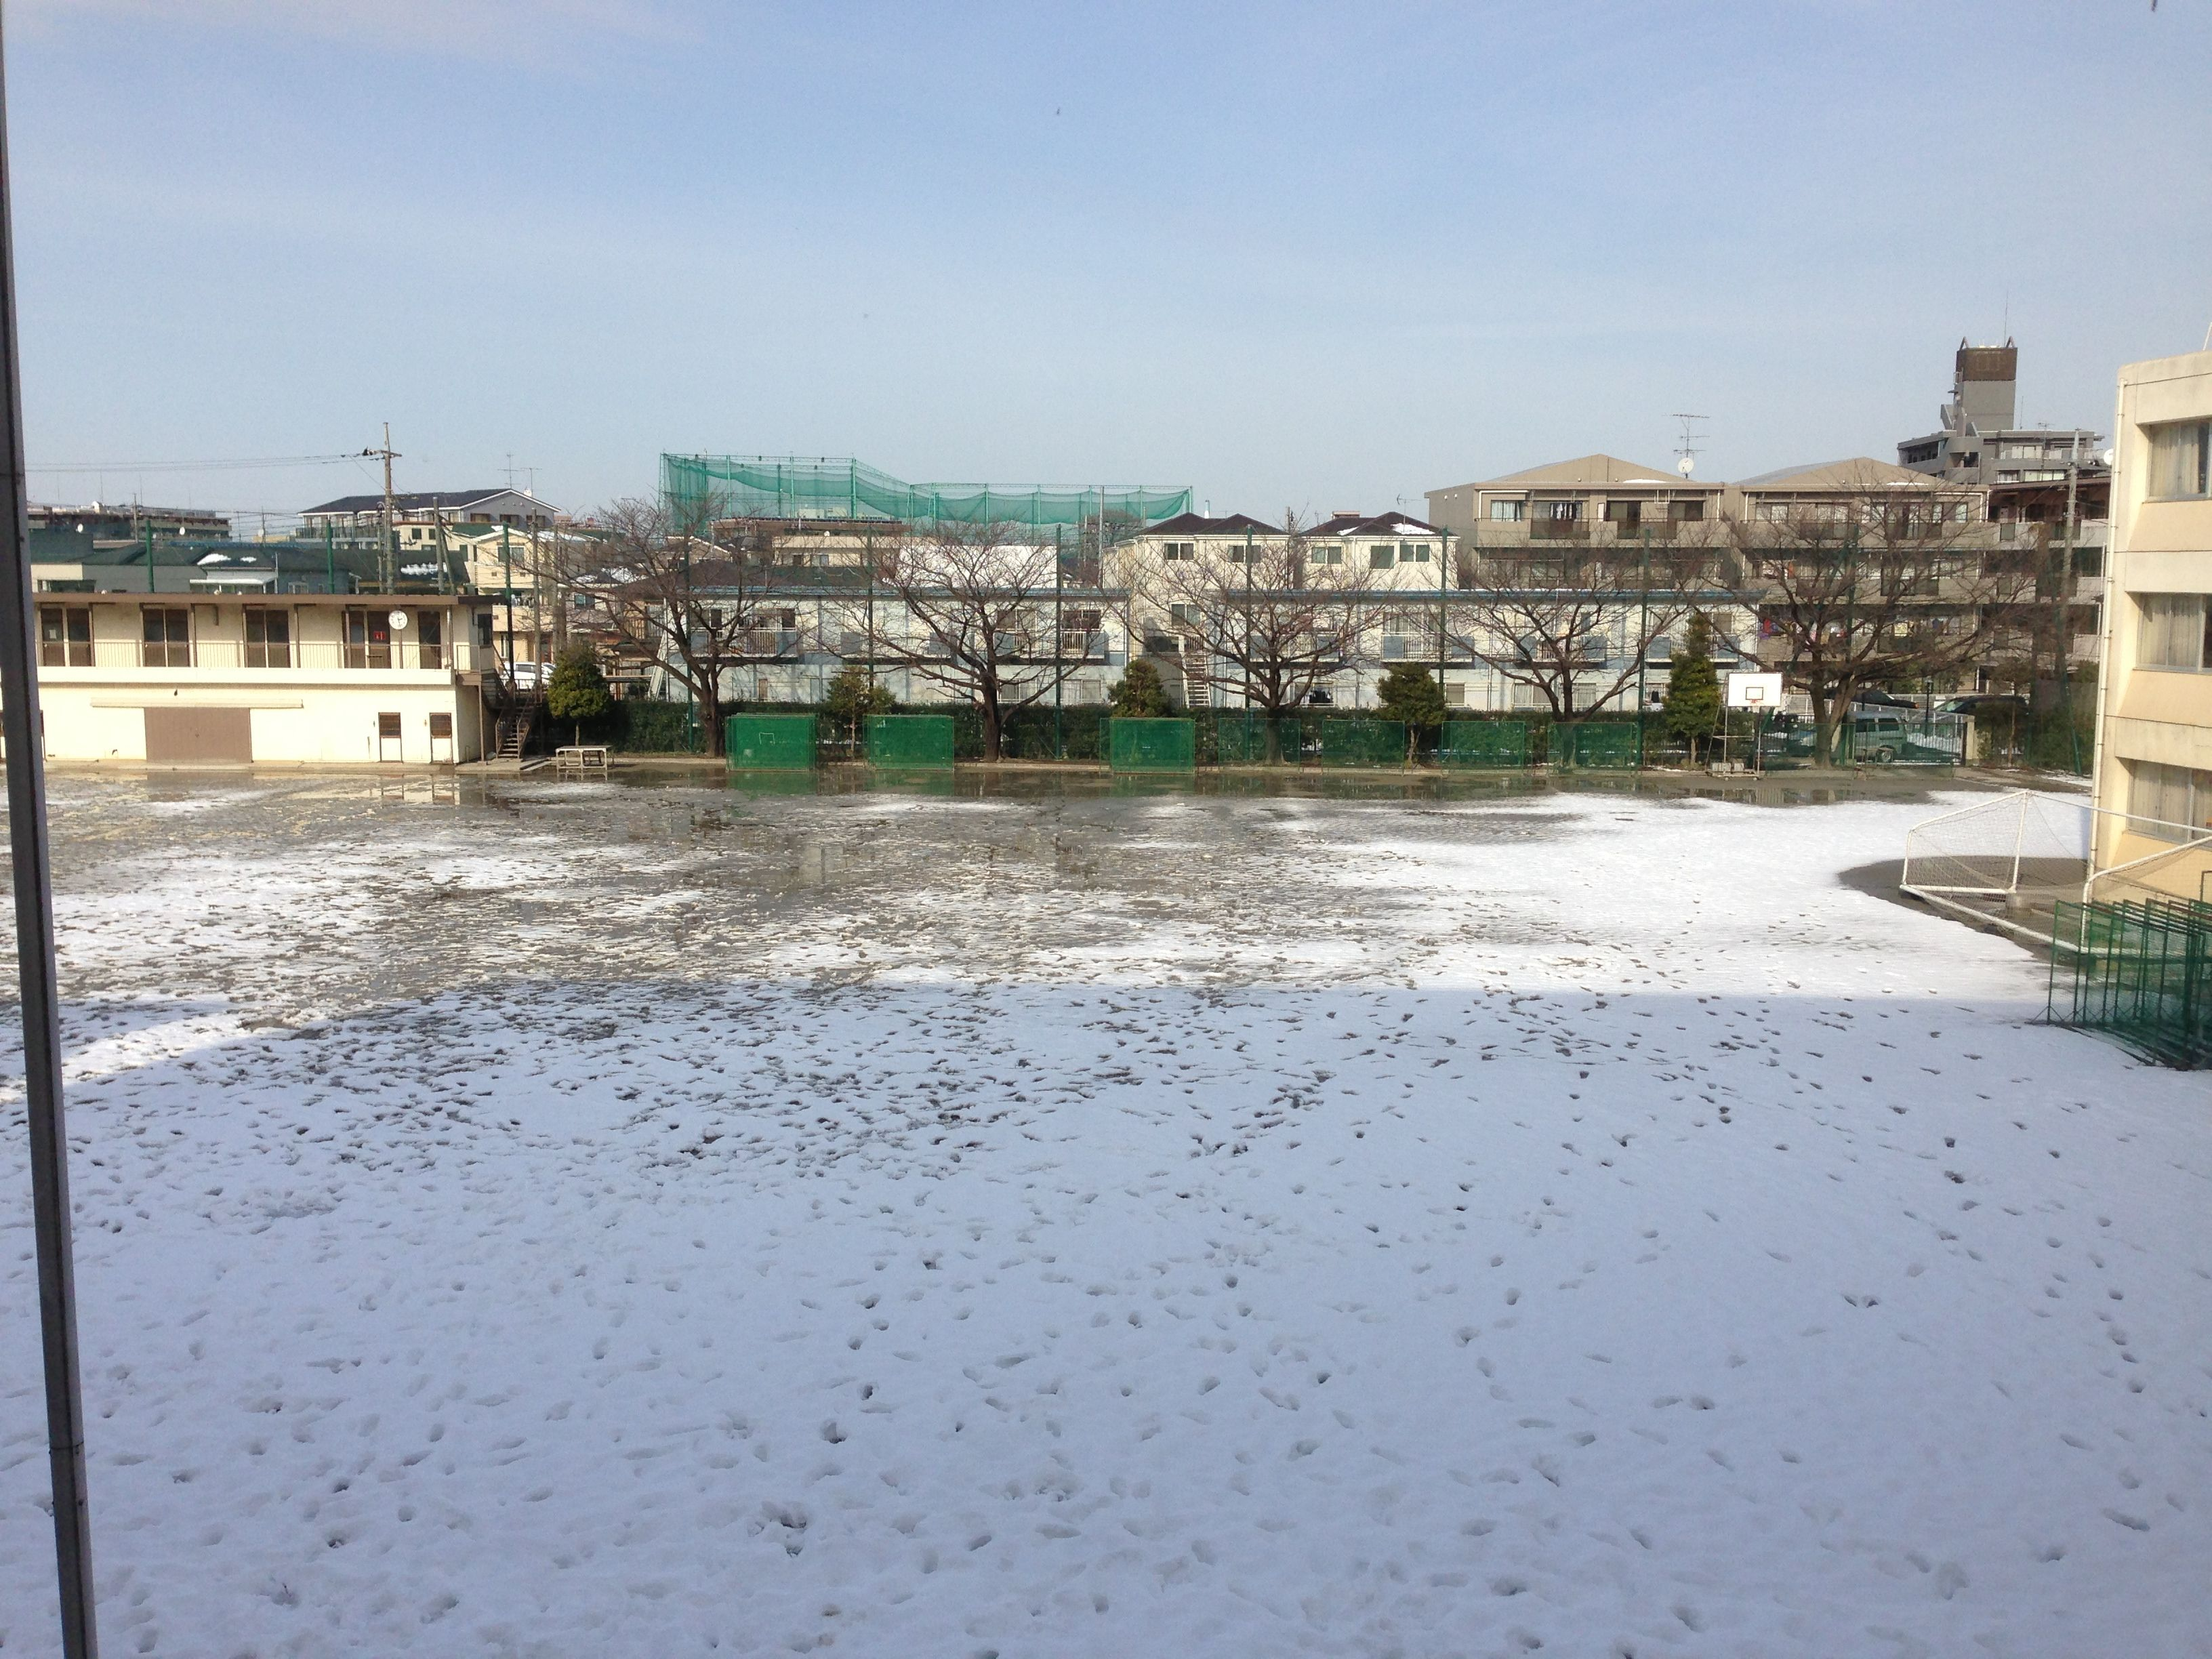 The view of a junior high school's courtyard two days after the snow storm of 2014.